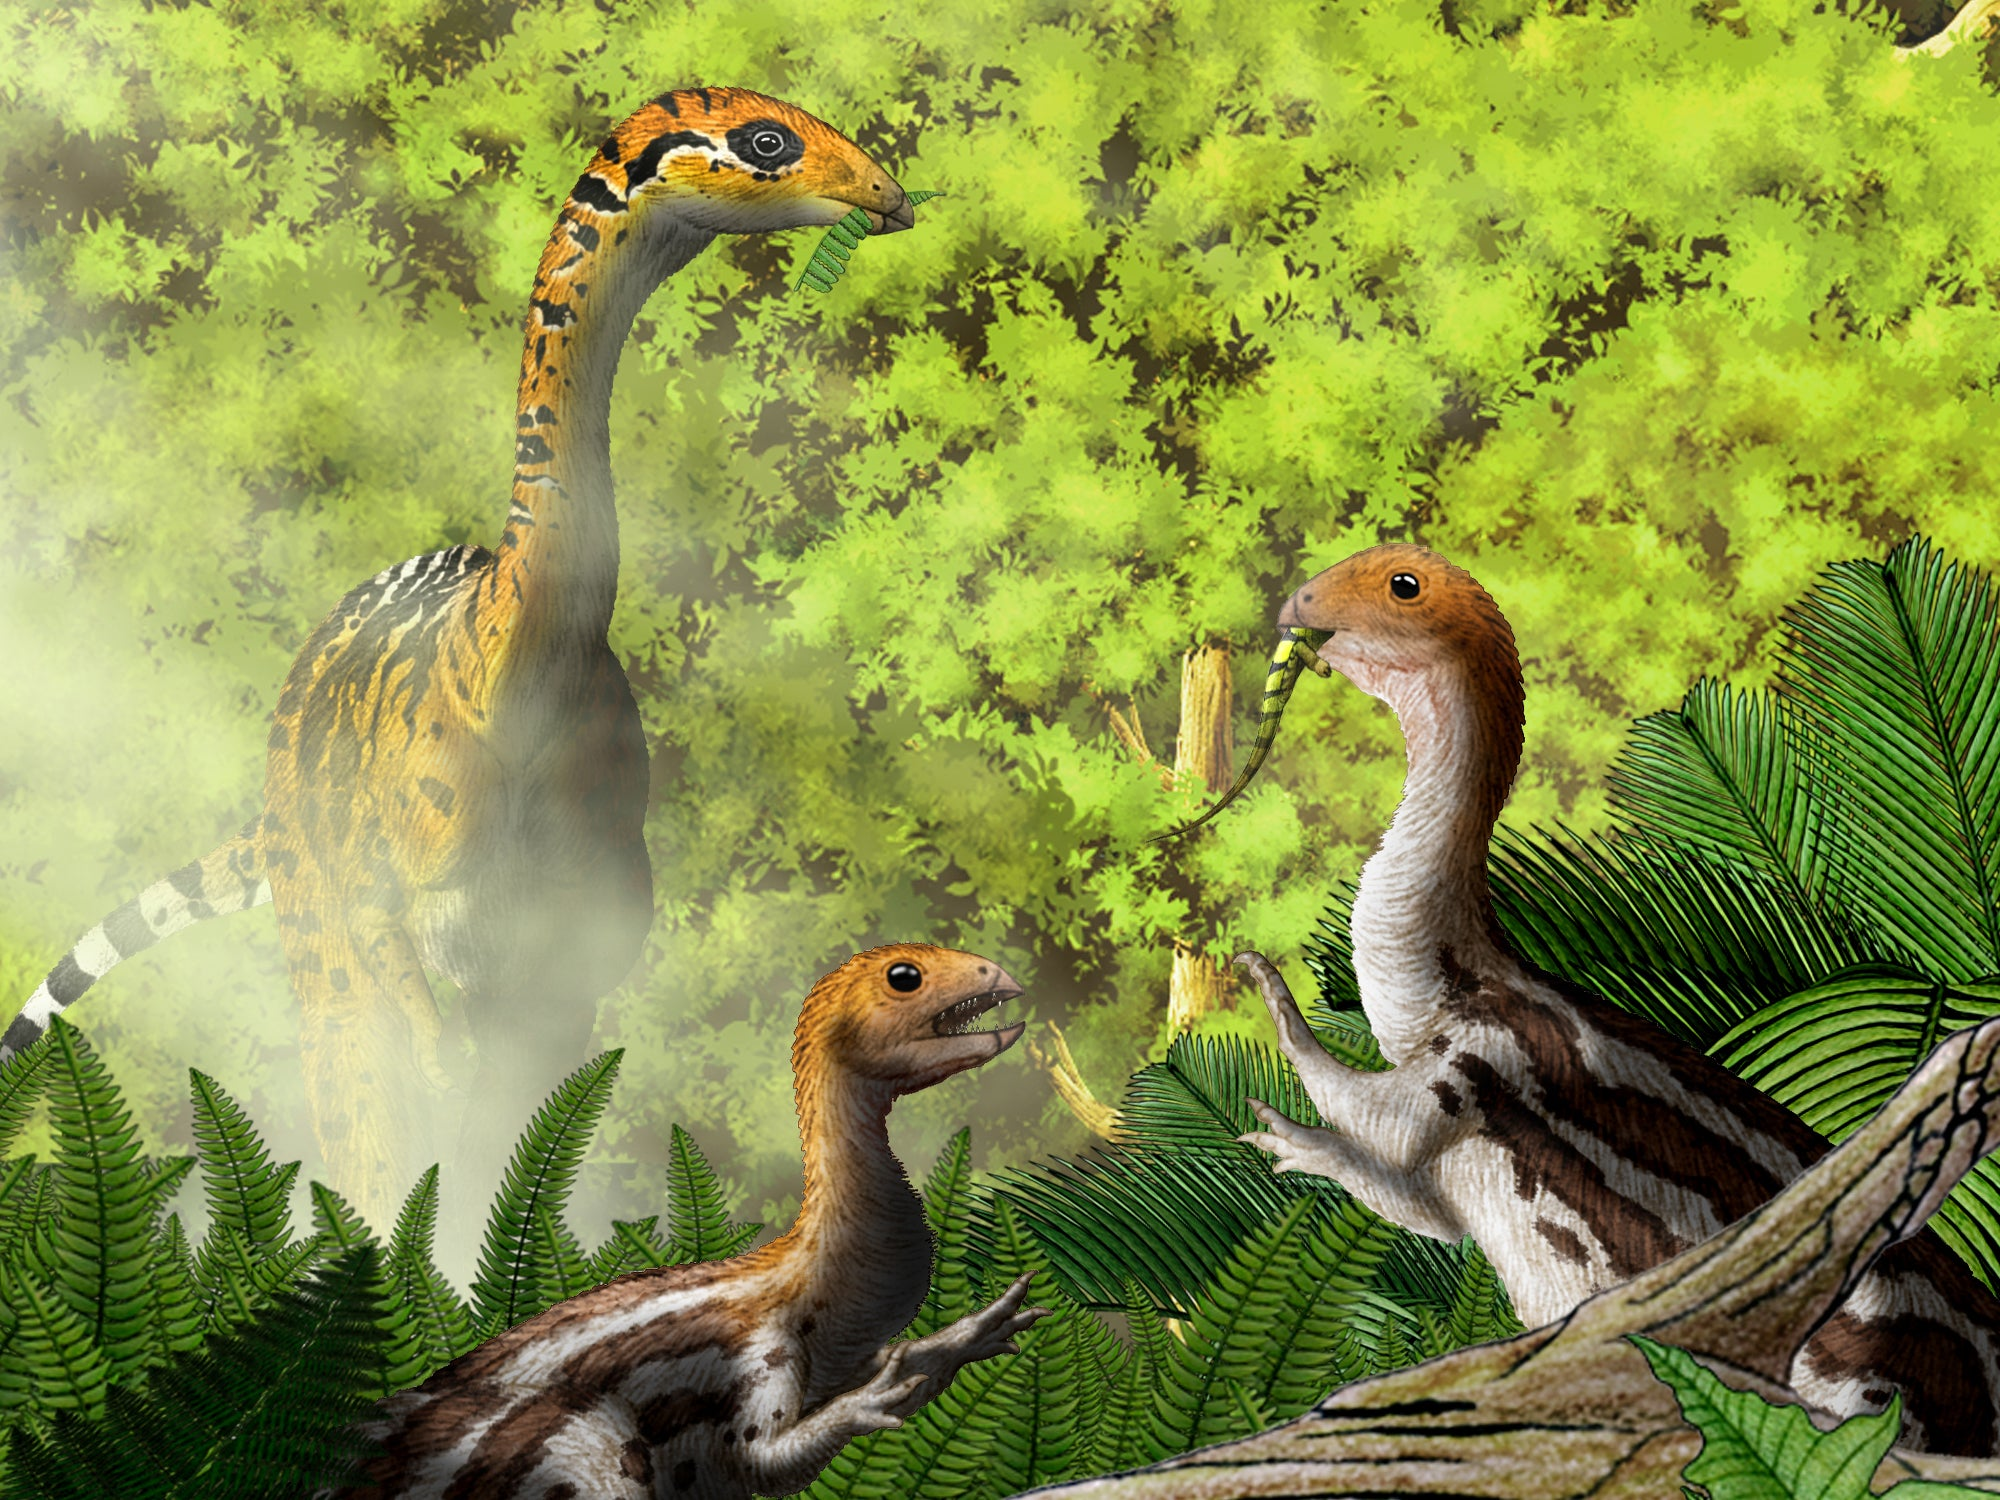 Meat Eating Dinosaur Grew Up To Become A Vegetarian Scientists Discover The Independent Independent